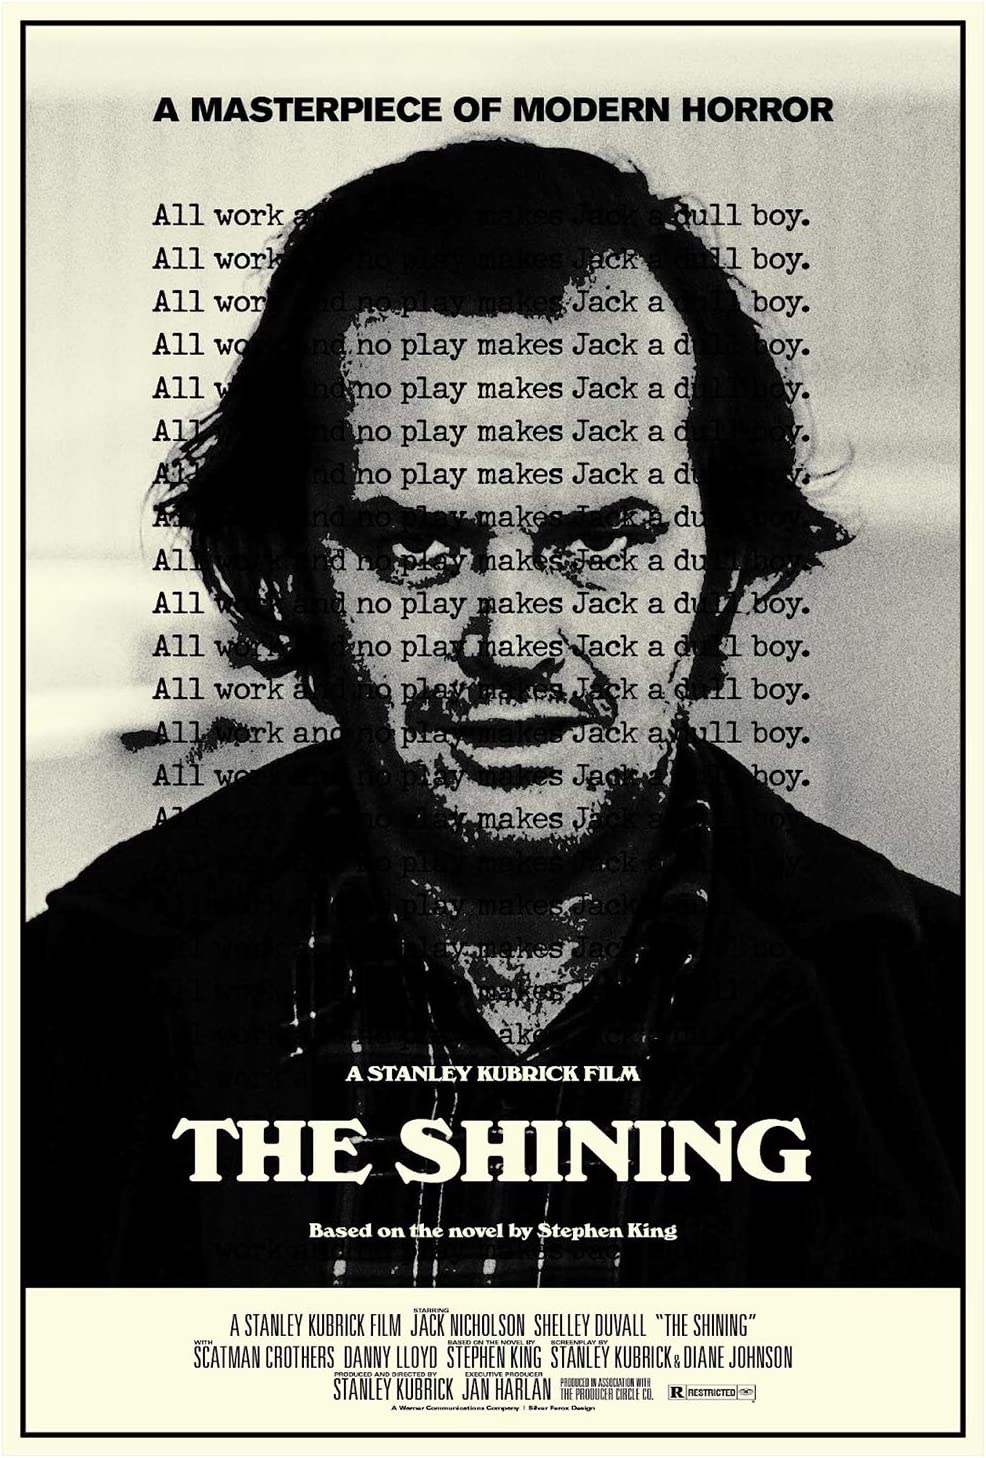 The Shining Stanley Kubrick Classic Horror Movie Tin Sign 8x12 Inches